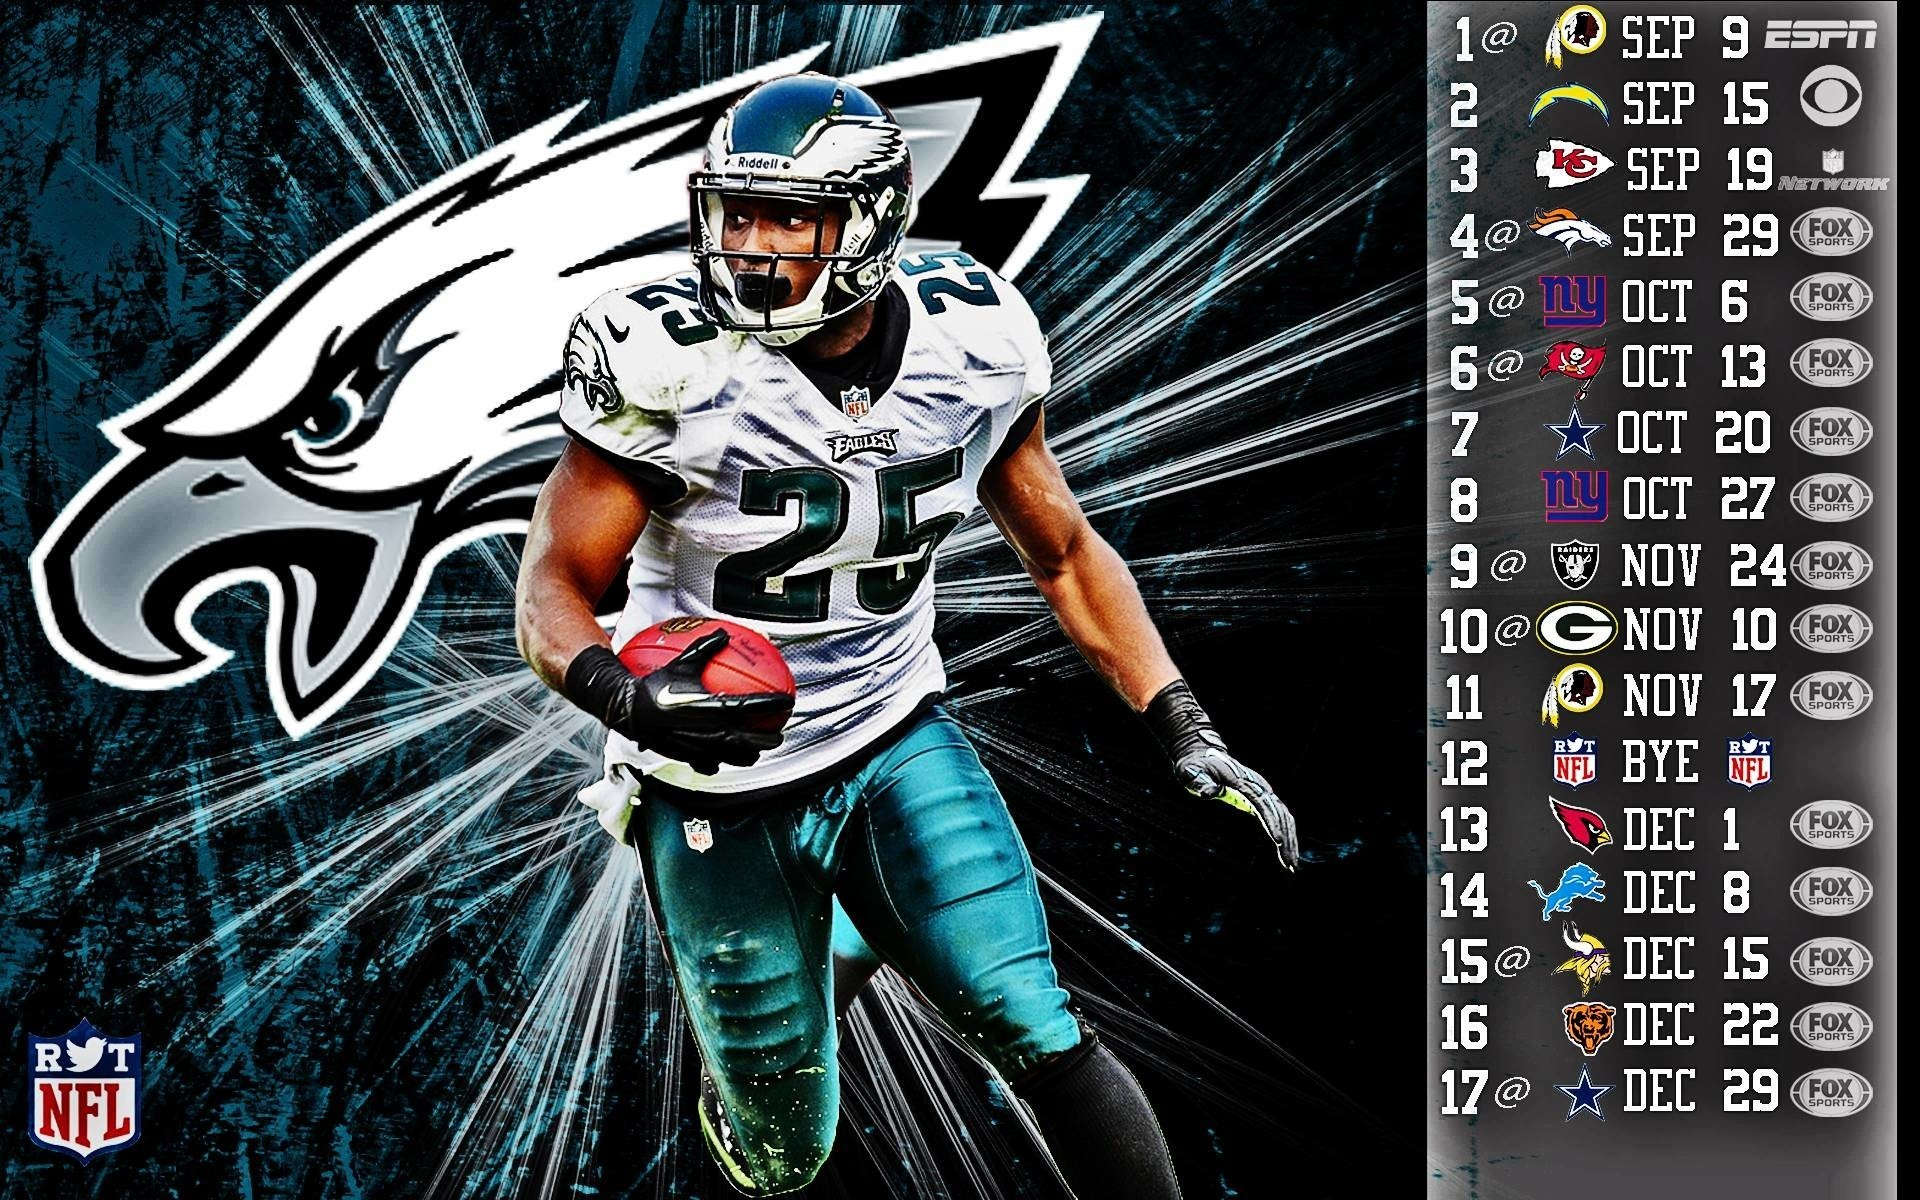 1920x1200 1920x1200 1920x1200 Nfl Eagle Wallpapers